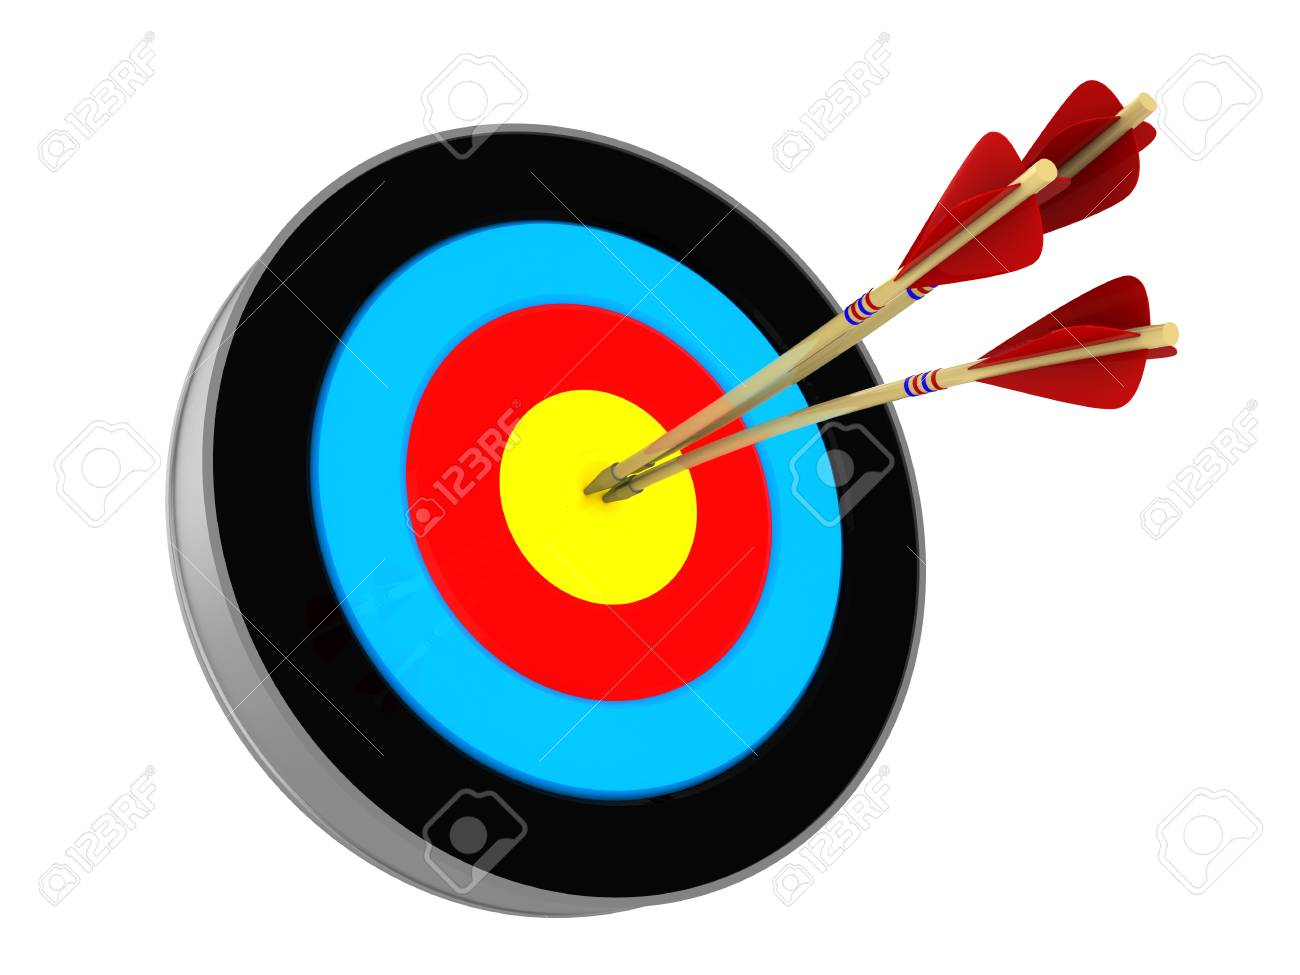 Archery target » Clipart Station.